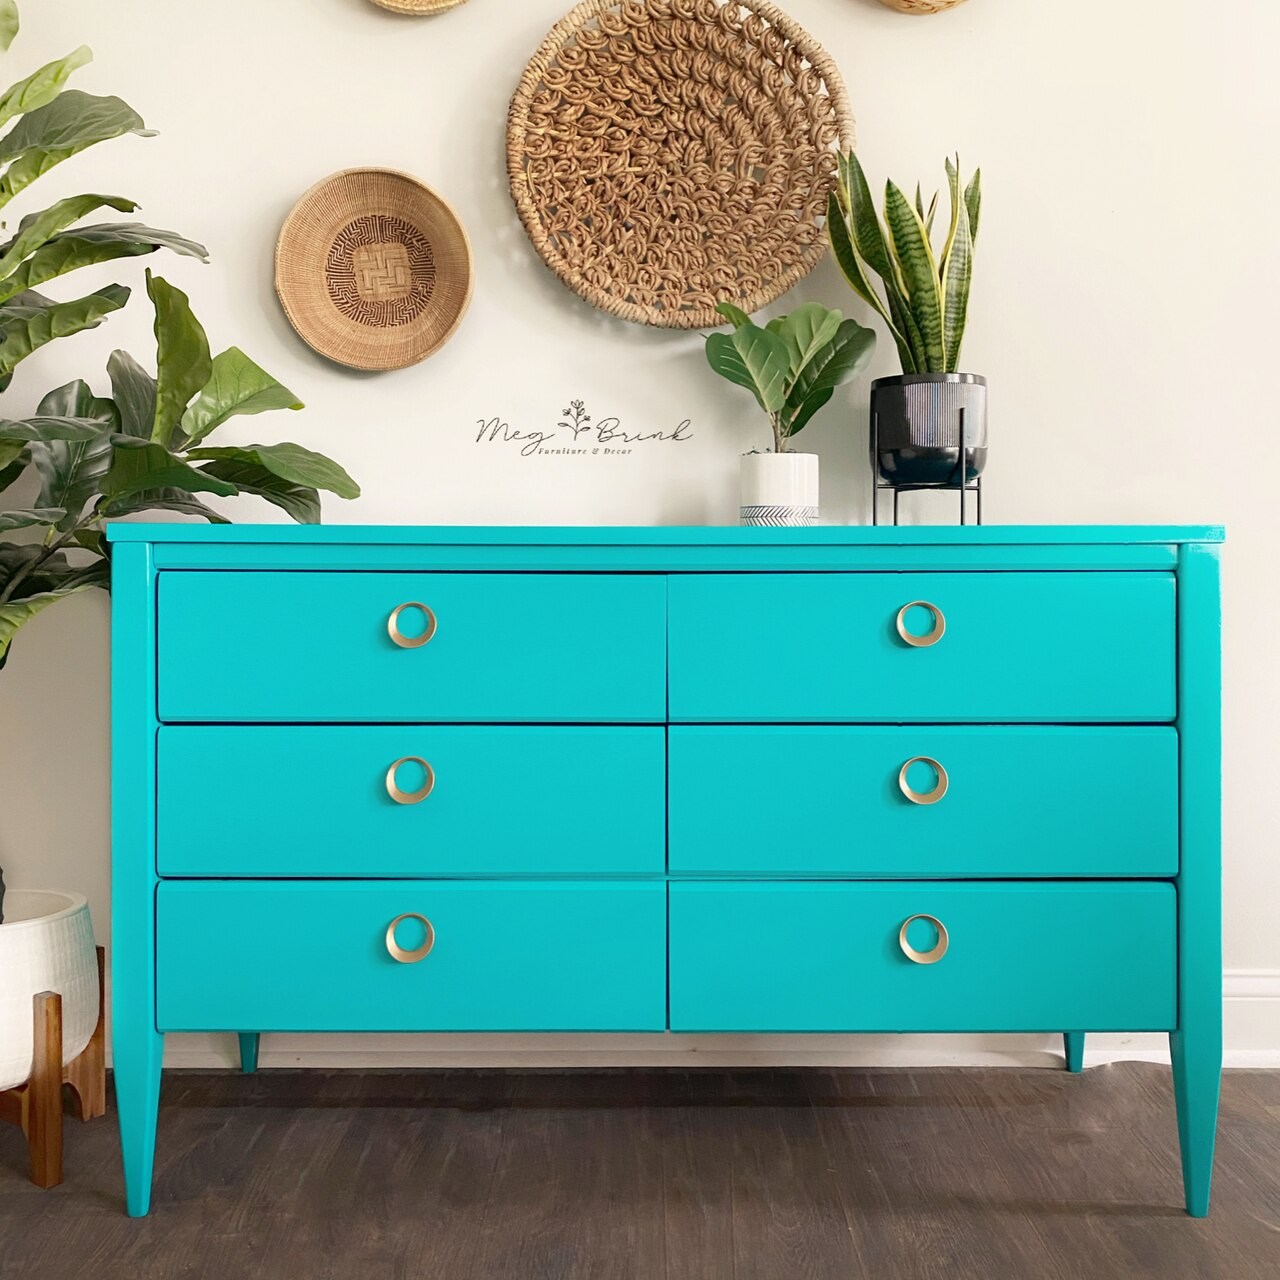 A wooden dresser painted in the Country Chic Paint peacock teal color Whoop-de-do.